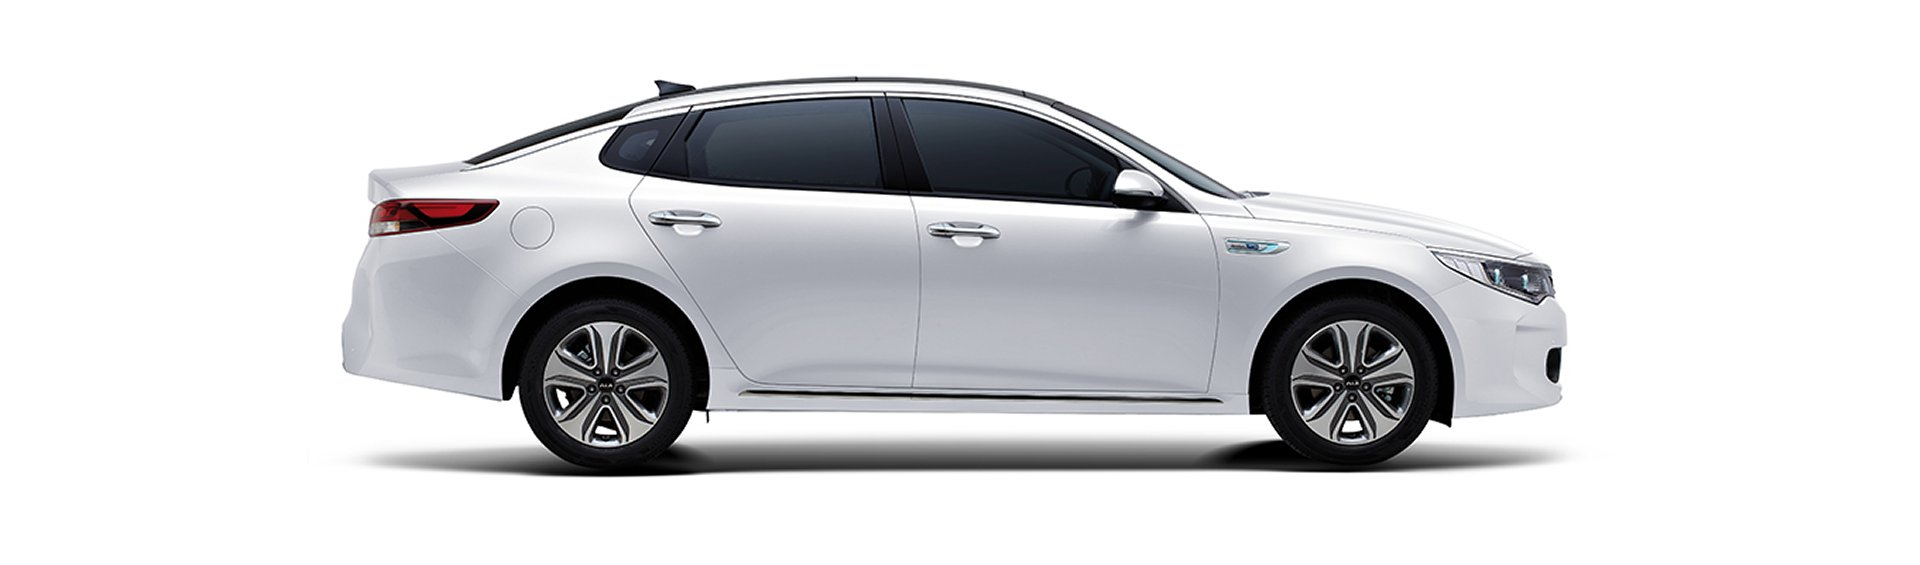 2017 Kia Optima Exterior Side White